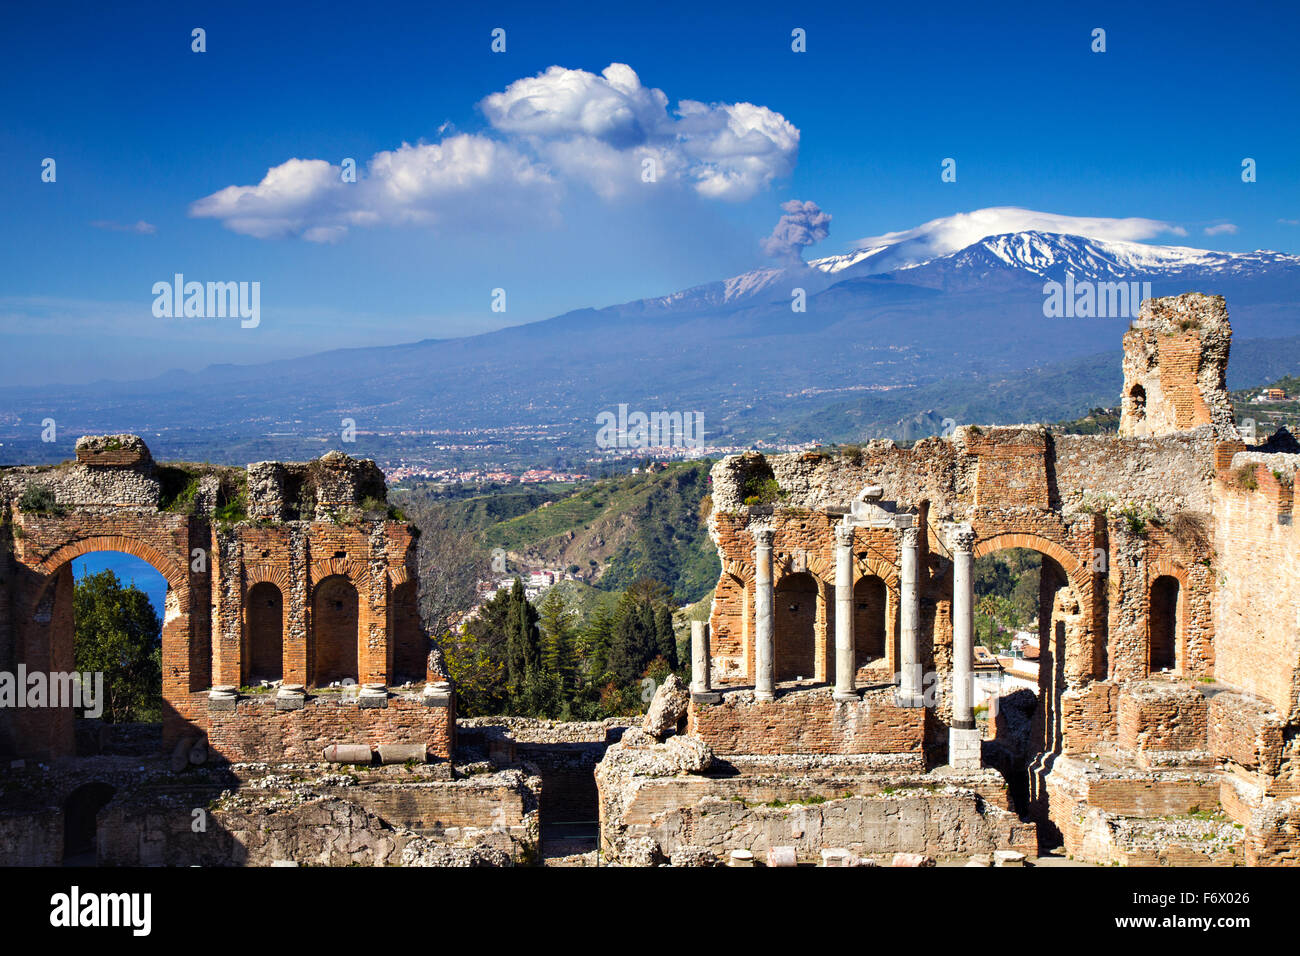 Ruins of the Greek Roman Theater with Etna erupting, Taormina, Sicily, Italy - Stock Image